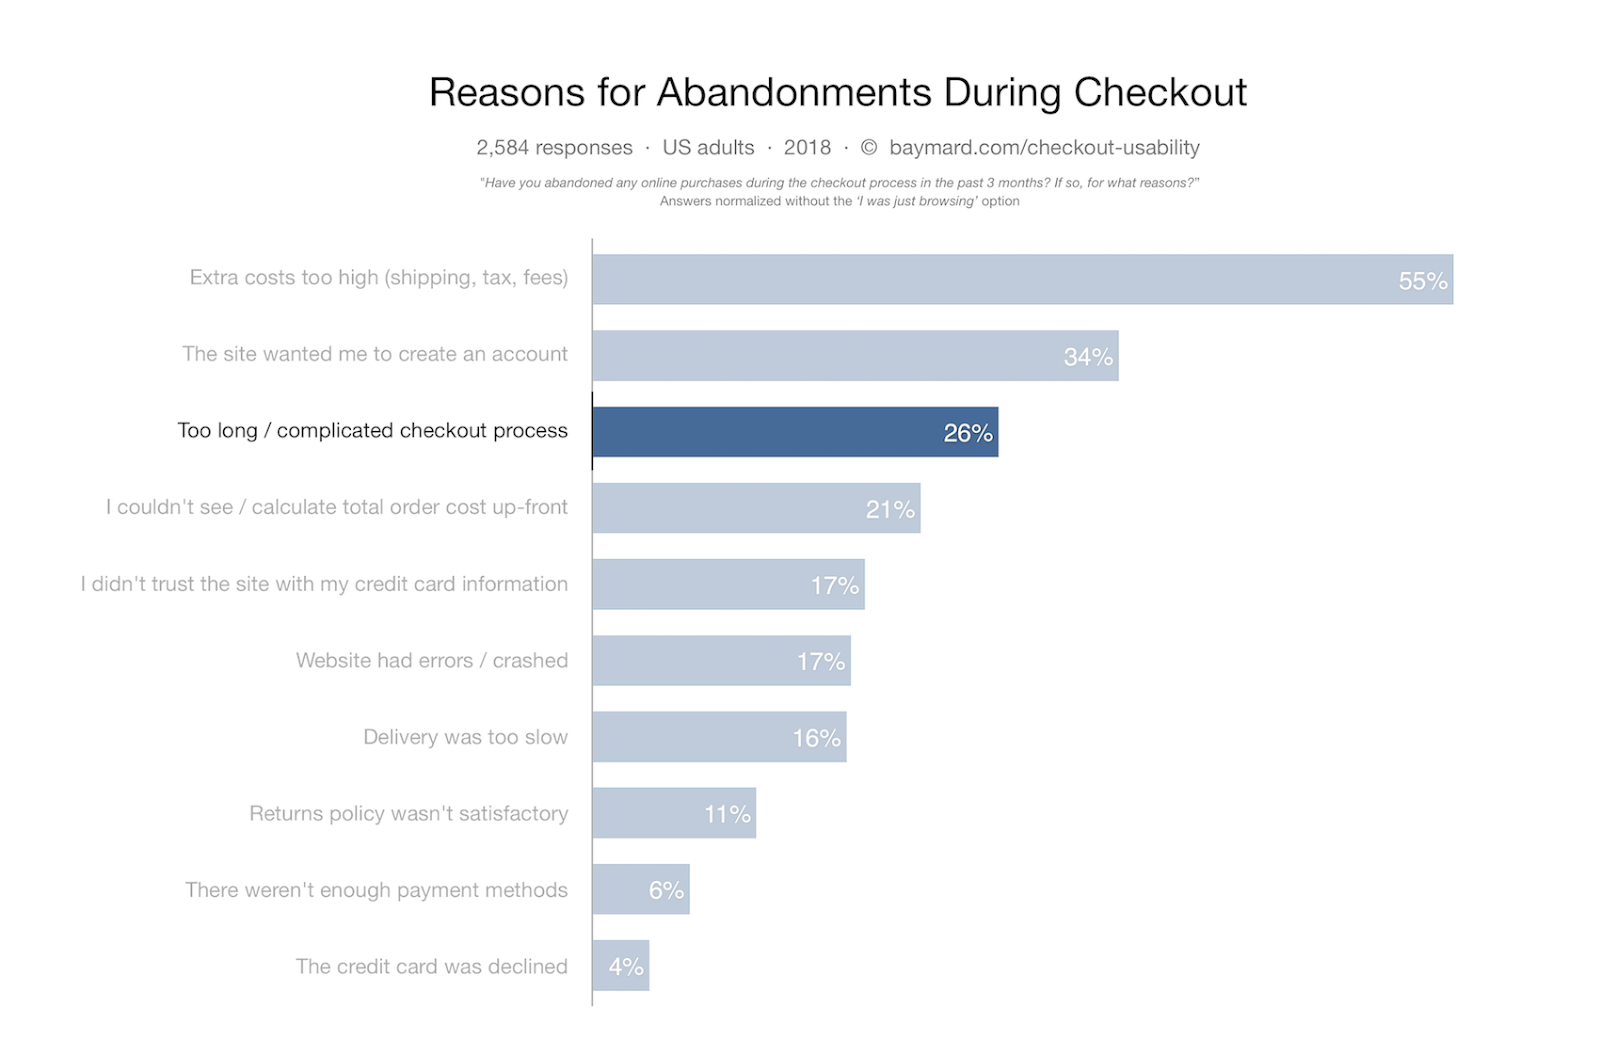 Reasons why customers abandon checkouts.